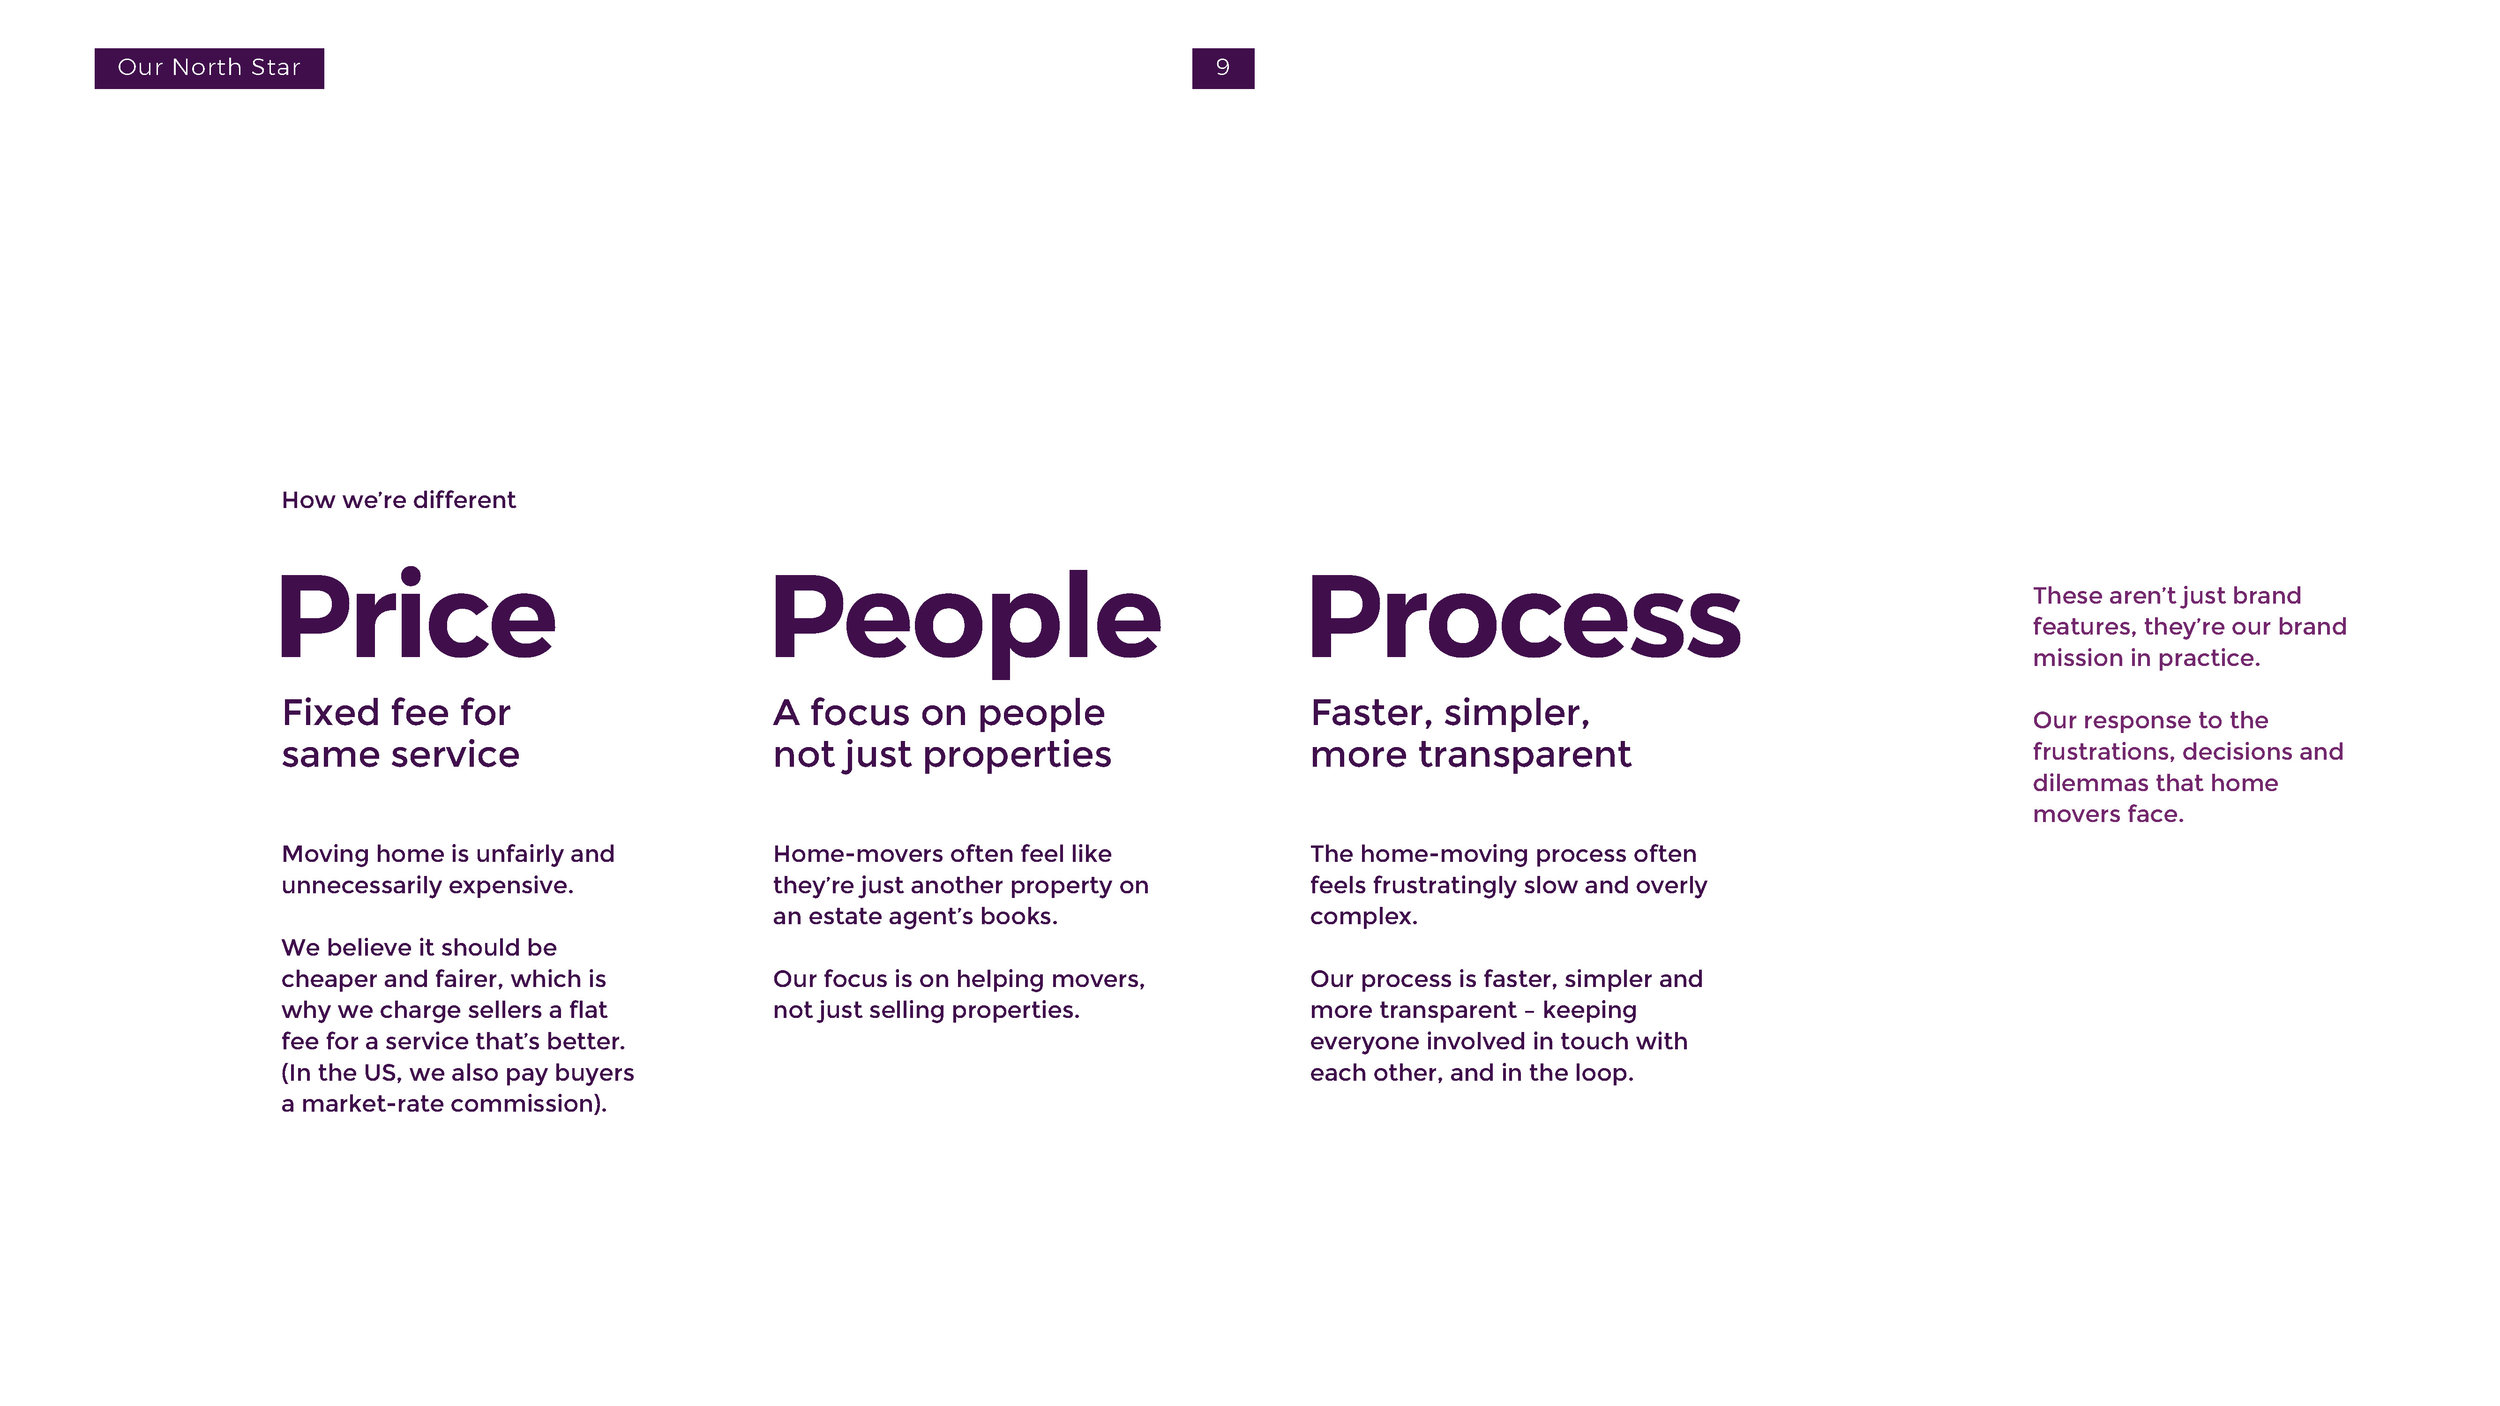 PURPLEBRICKS_GUIDELINES_2_Page_09.jpg